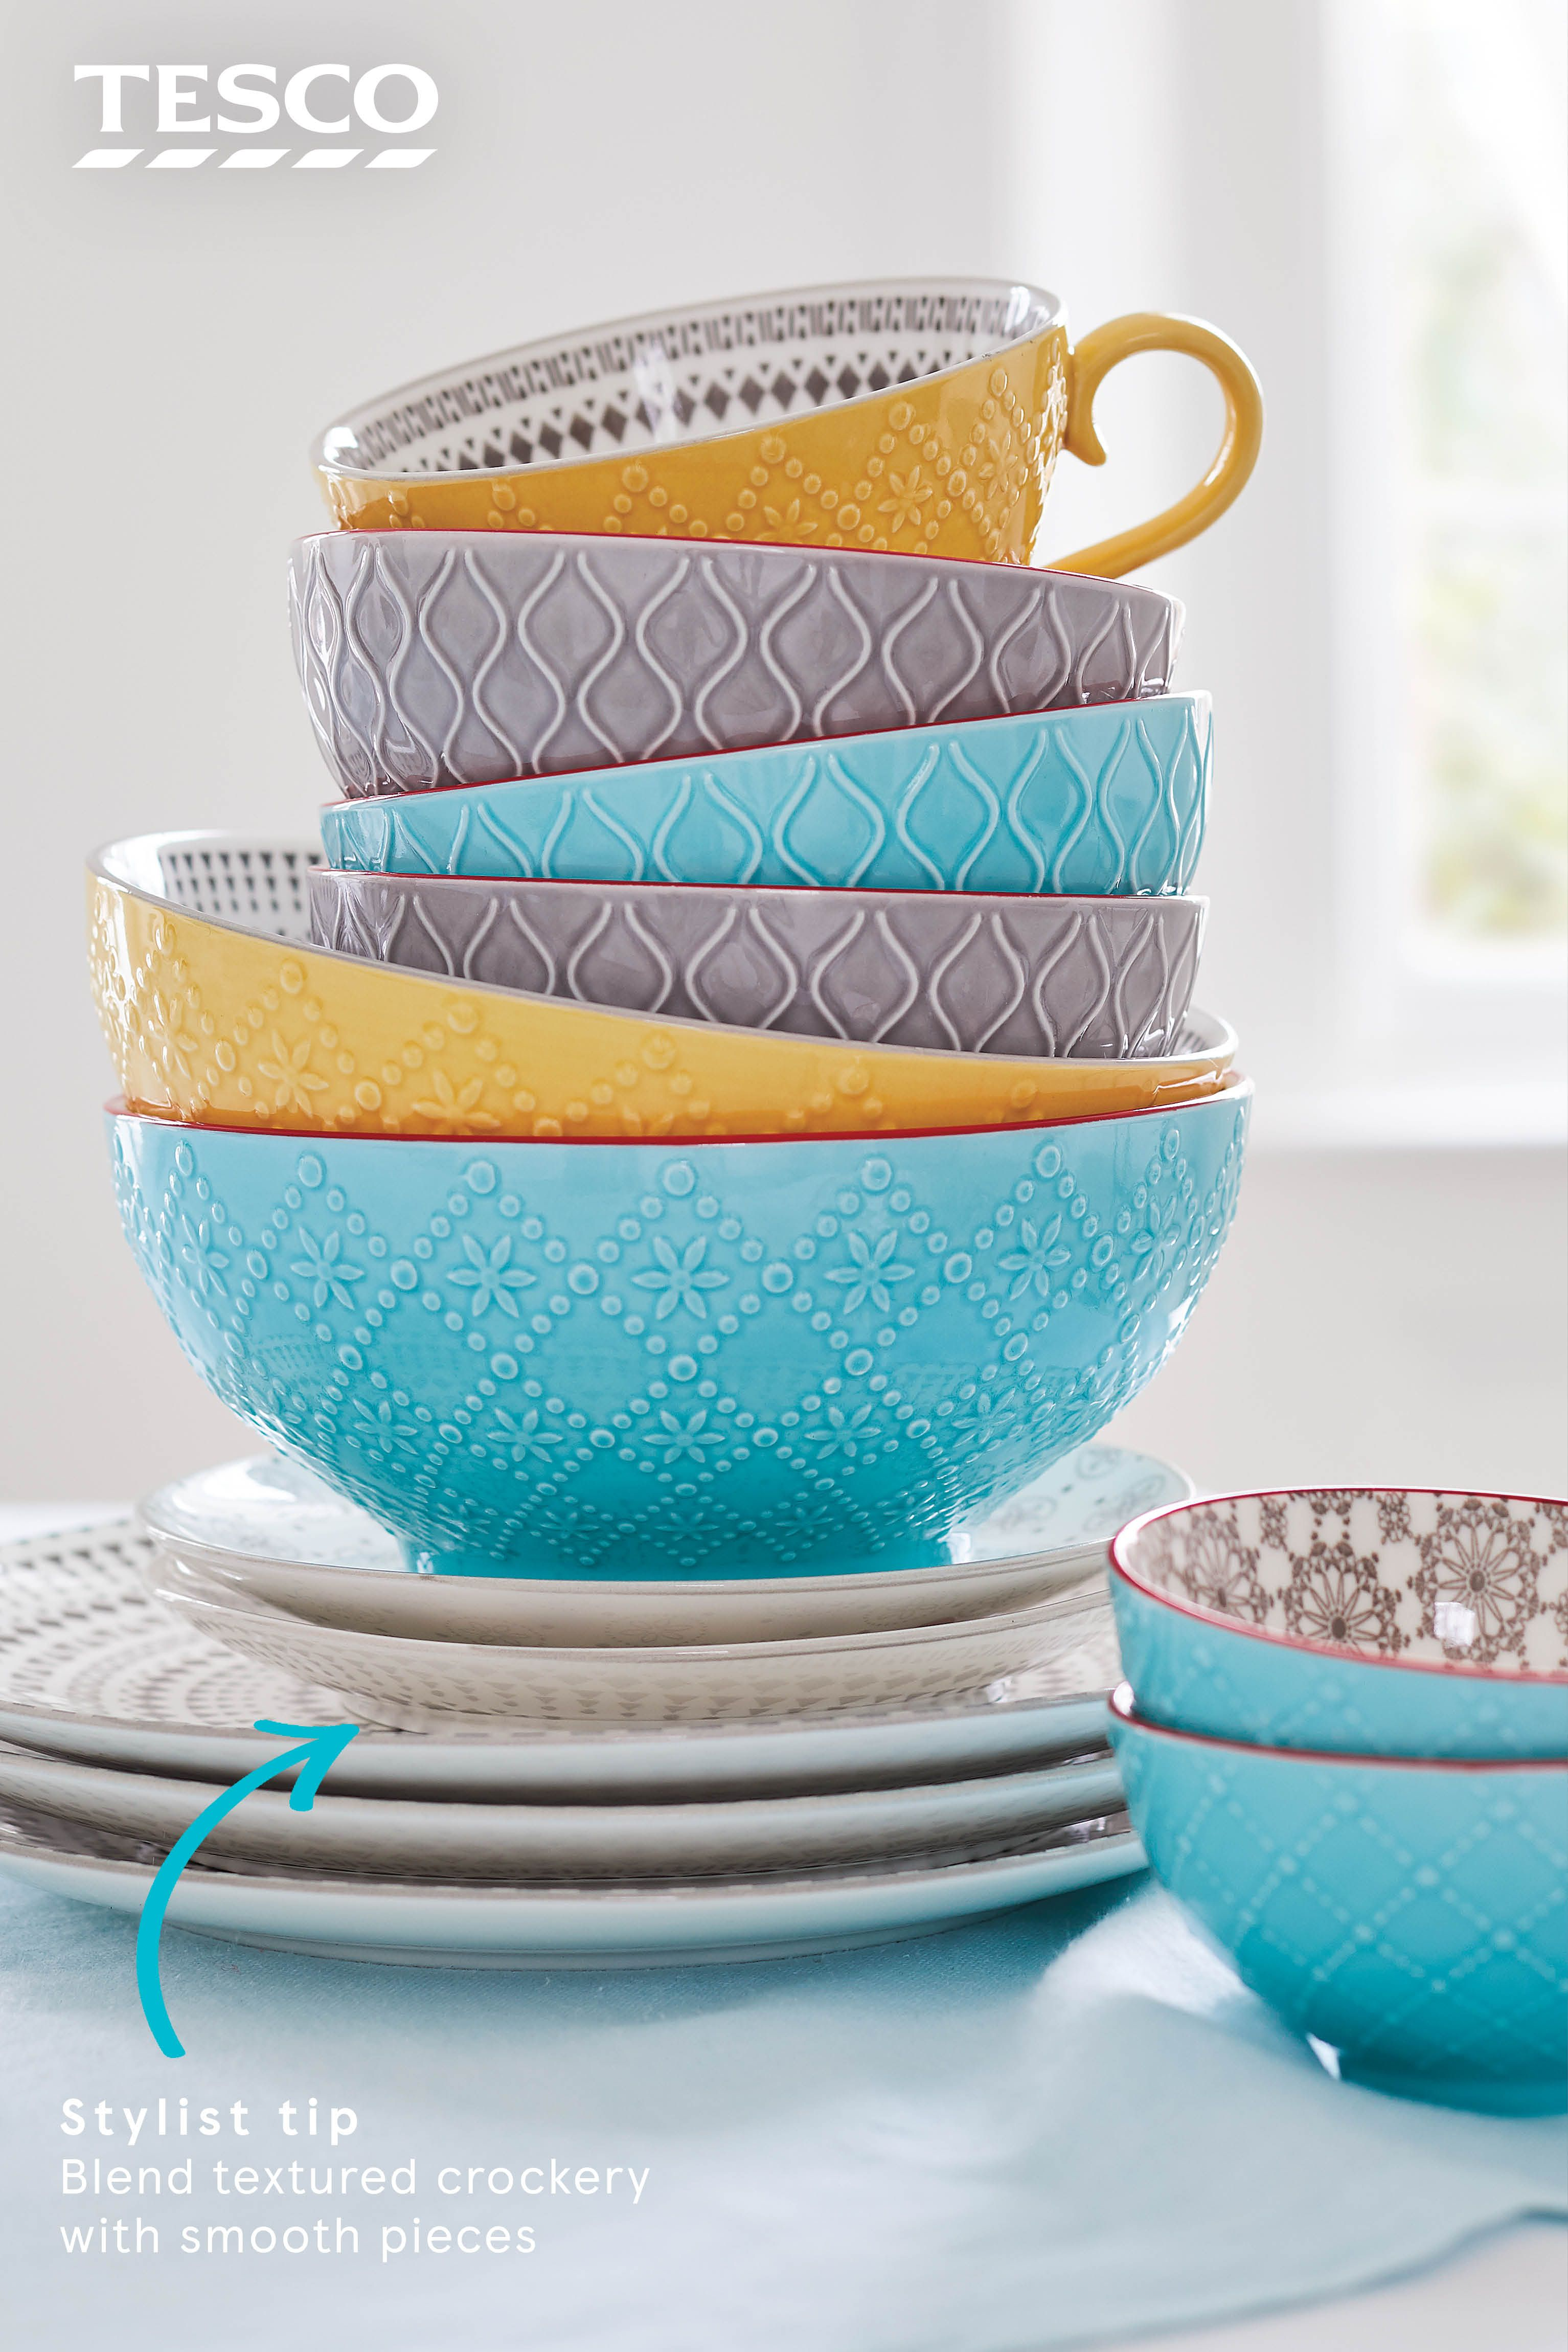 Introducing Our Great Value Dinnerware Set The Kosmo Range Comes In A Range Of Sizes So You Ll Have A Great Teal Dinnerware Colorful Dinnerware Dinnerware Set